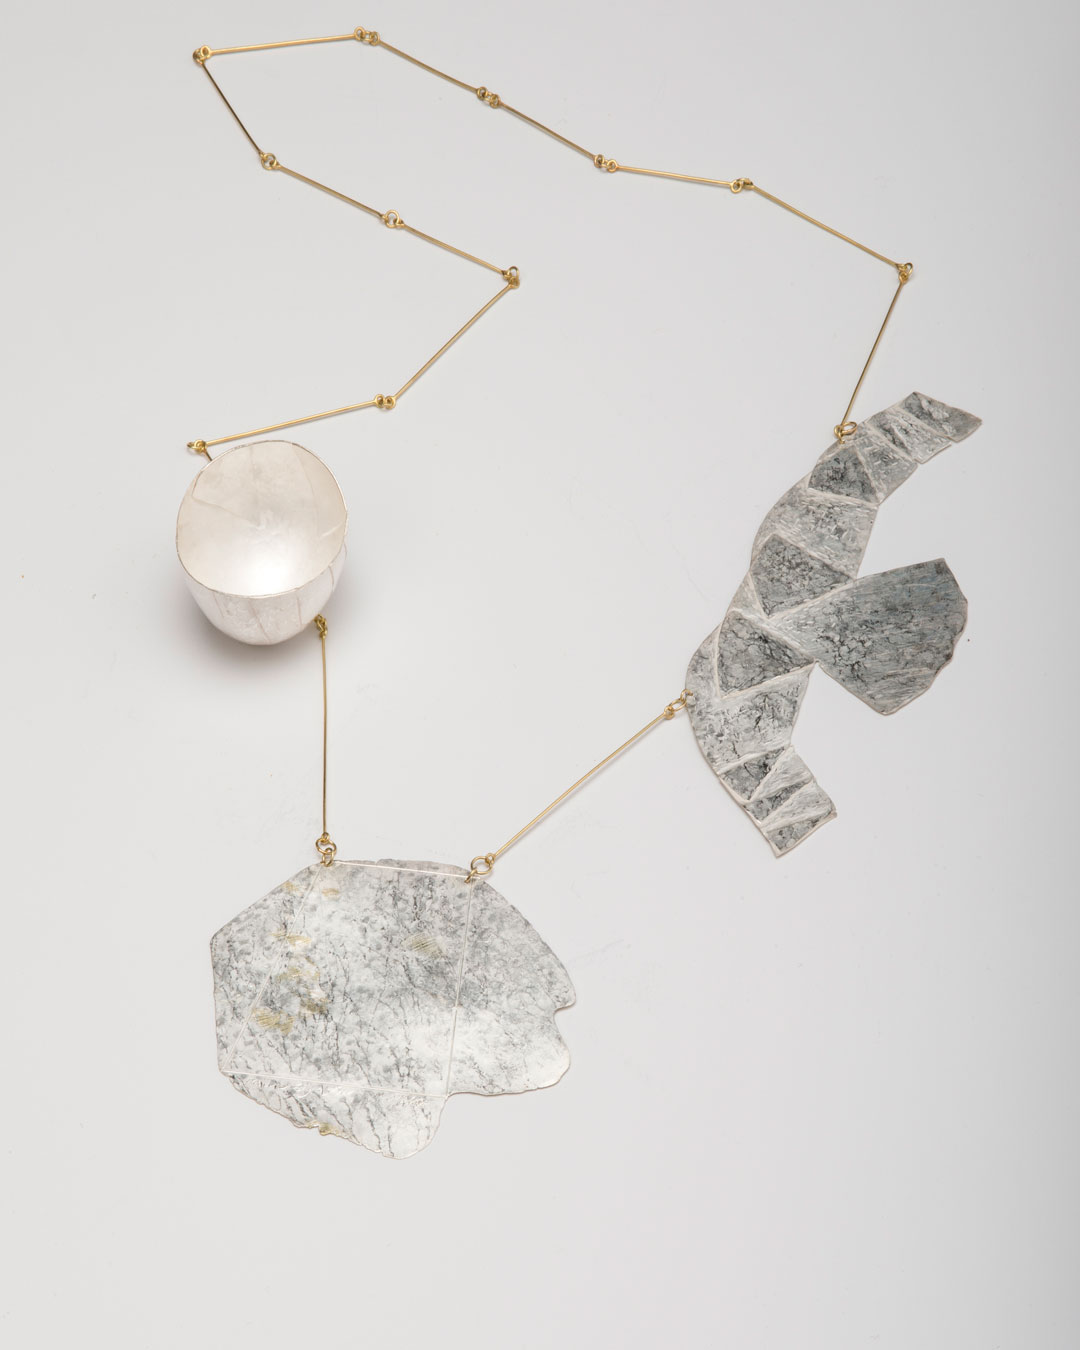 Noam Elyashiv, Story, 2019, necklace; recycled silver, 18ct gold, 250 x 350 mm, €5820